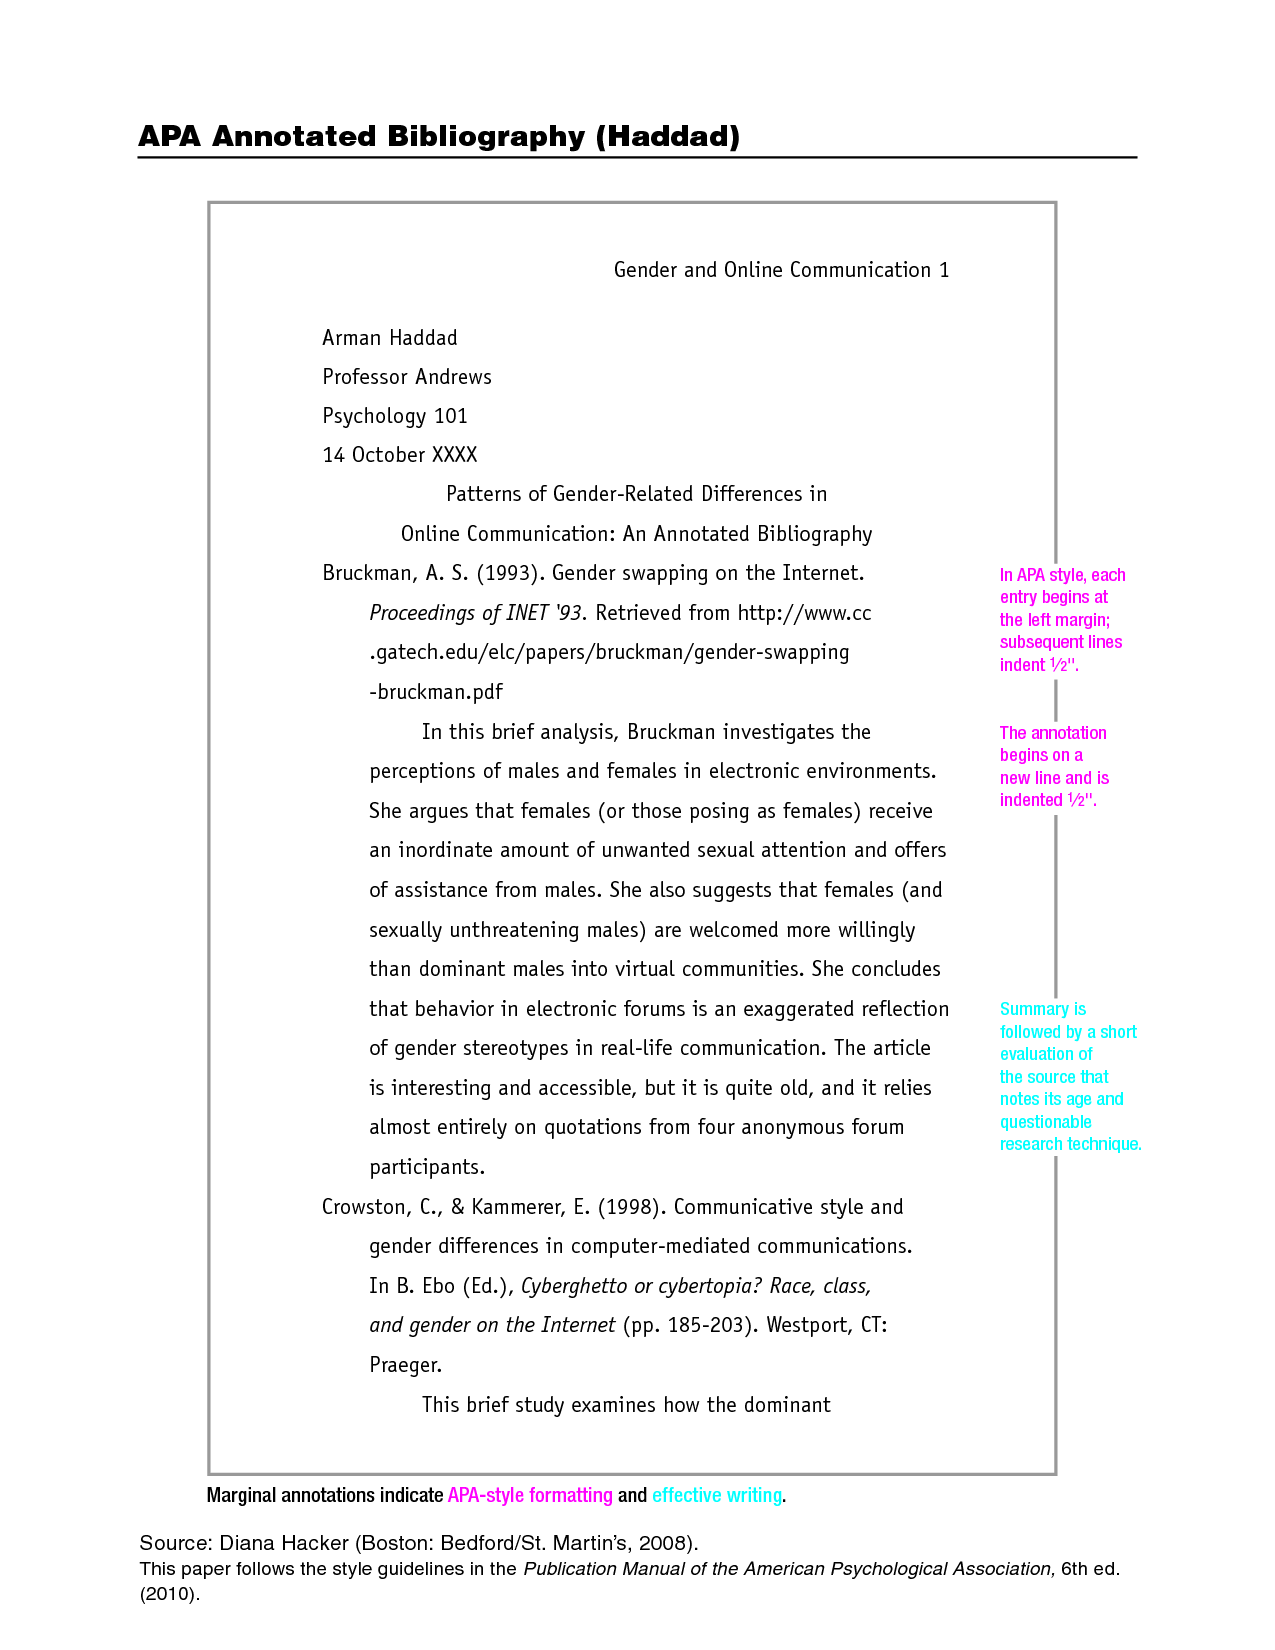 011 Apa Paper Template Si6pk8fz Essay Style Amazing Styles Of Communication Music Writing Guide Full